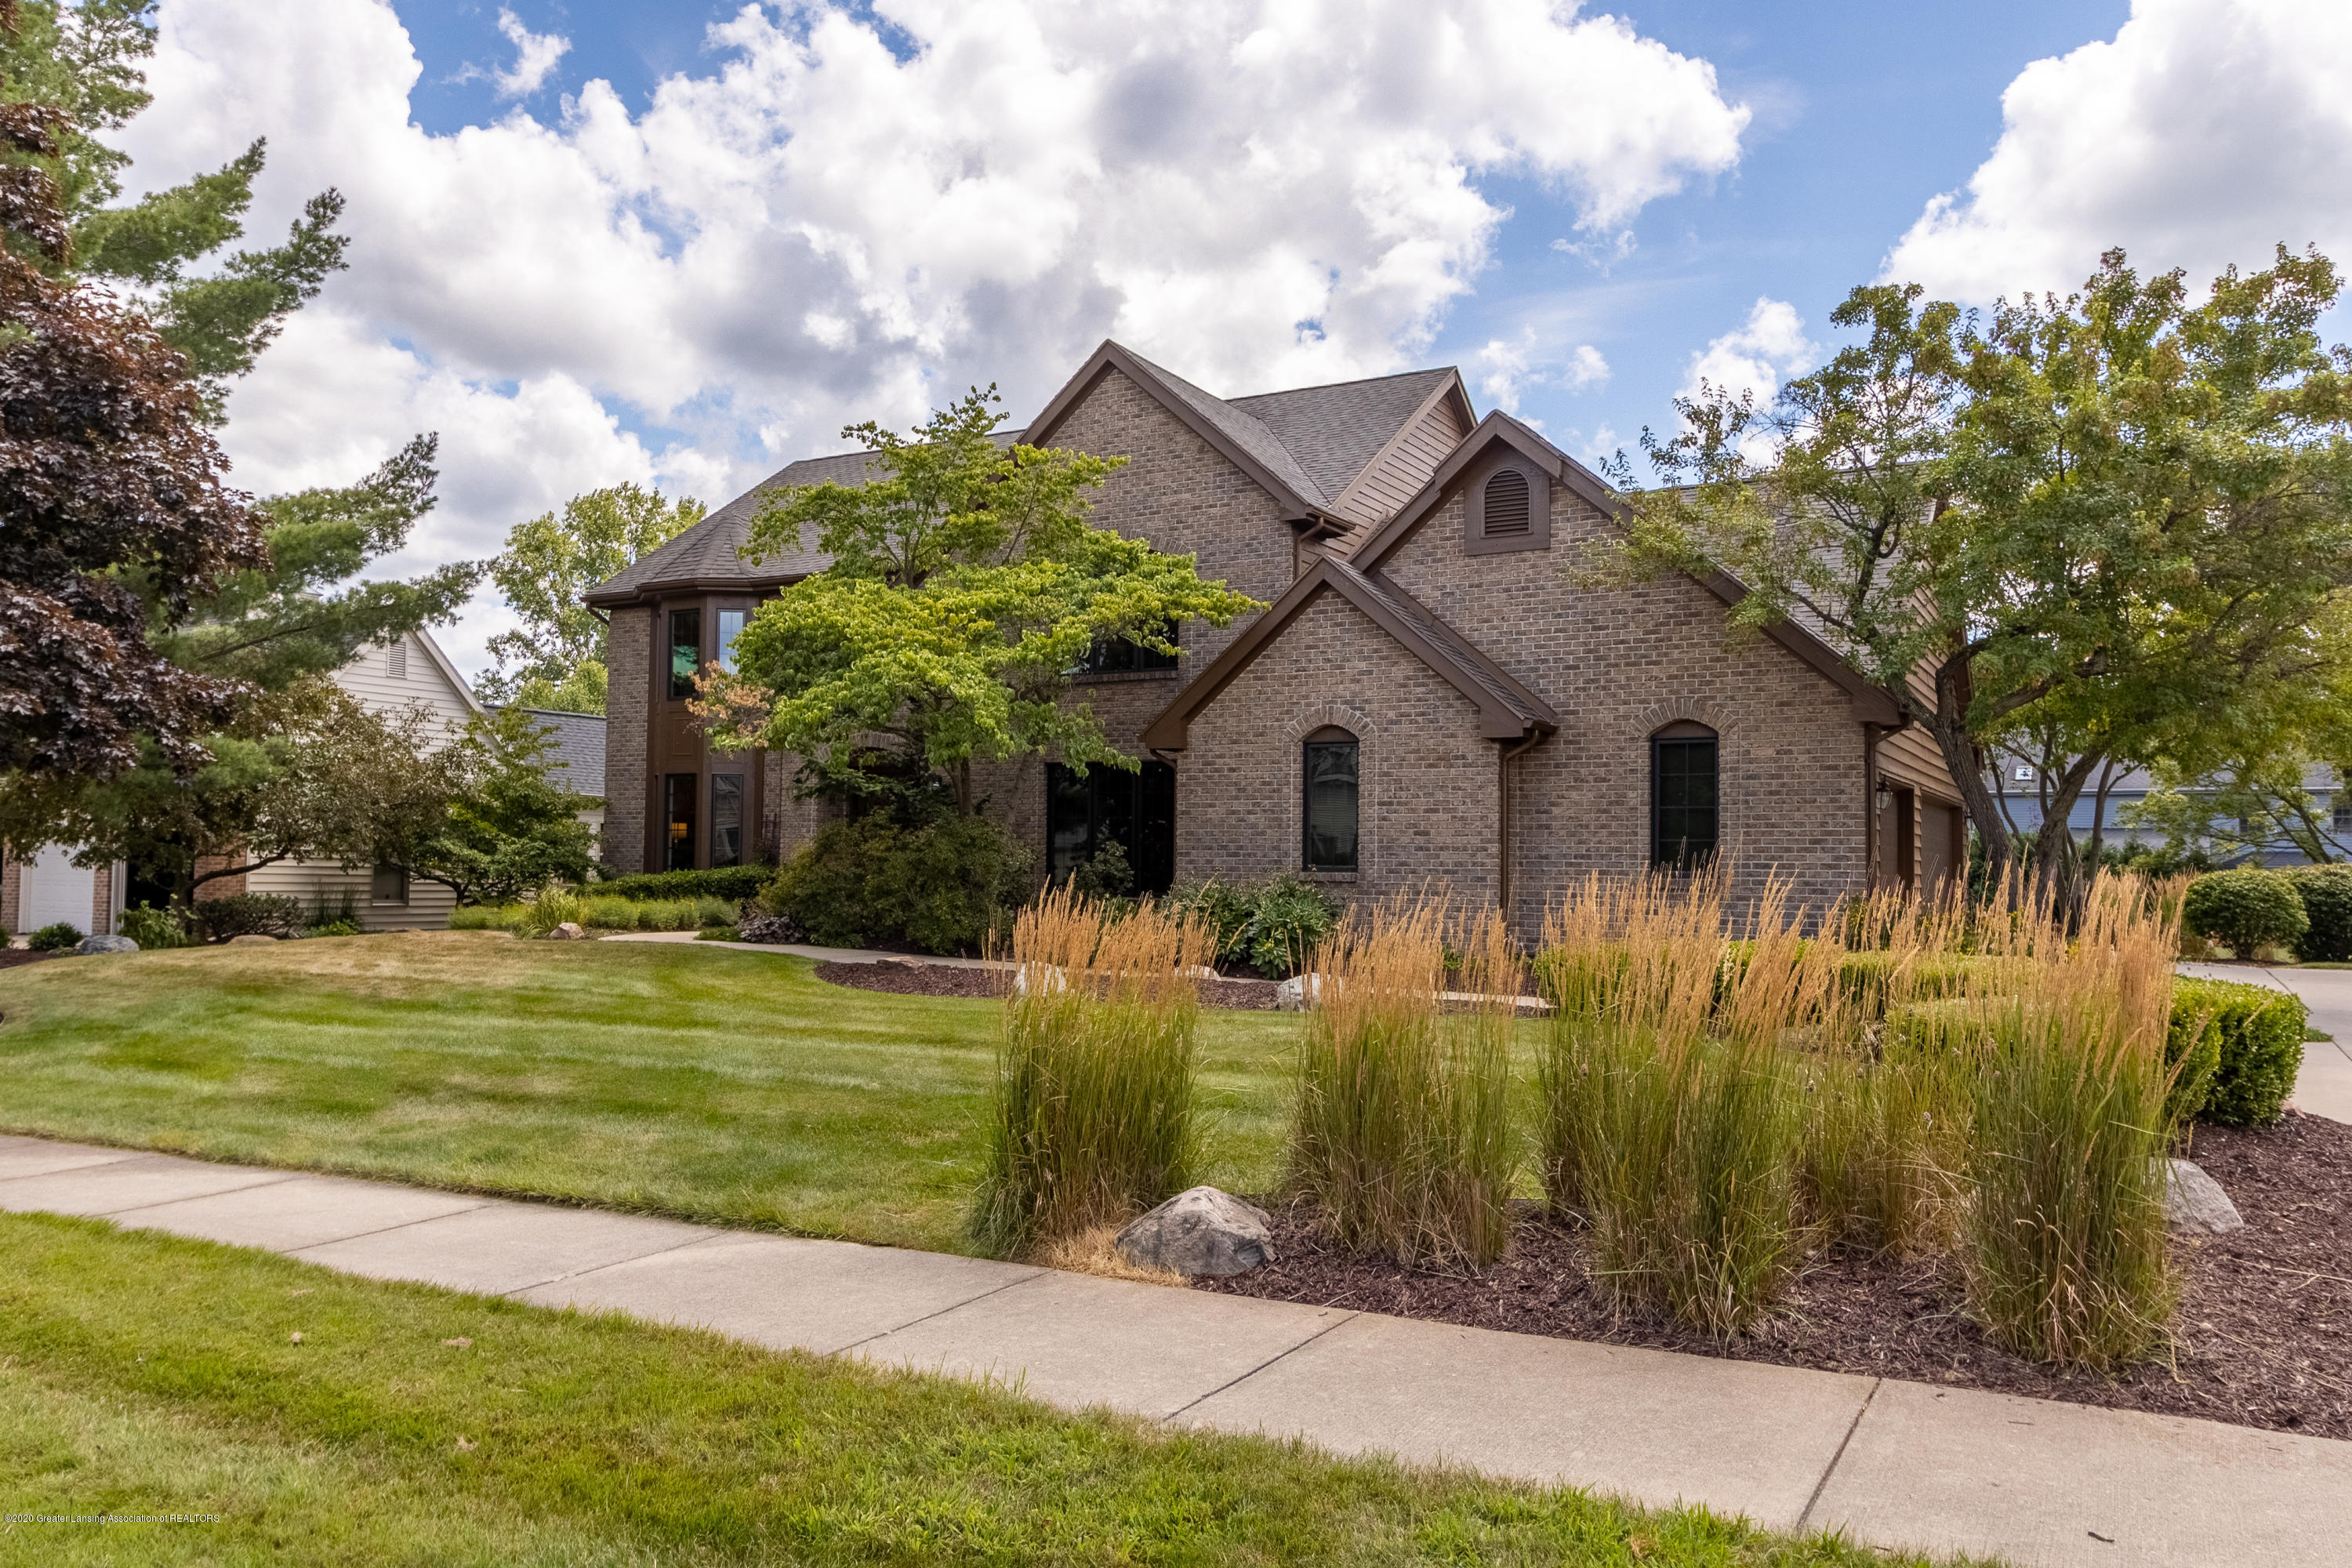 3892 Crooked Creek Rd - Street View - 3